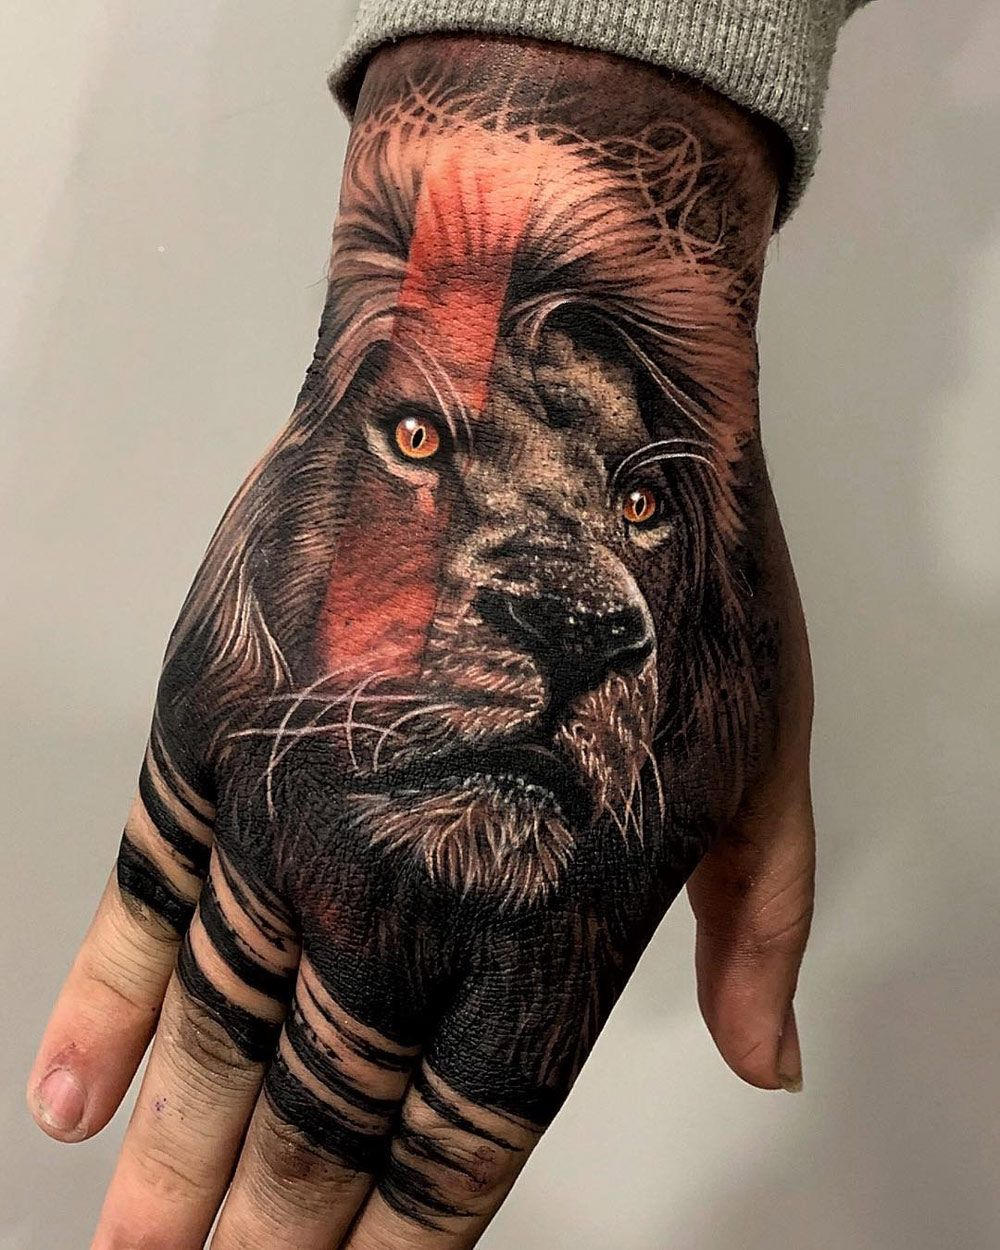 Lion Hand Tattoo In 2020 Lion Hand Tattoo Back Of Hand Tattoos Hand Tattoos For Guys